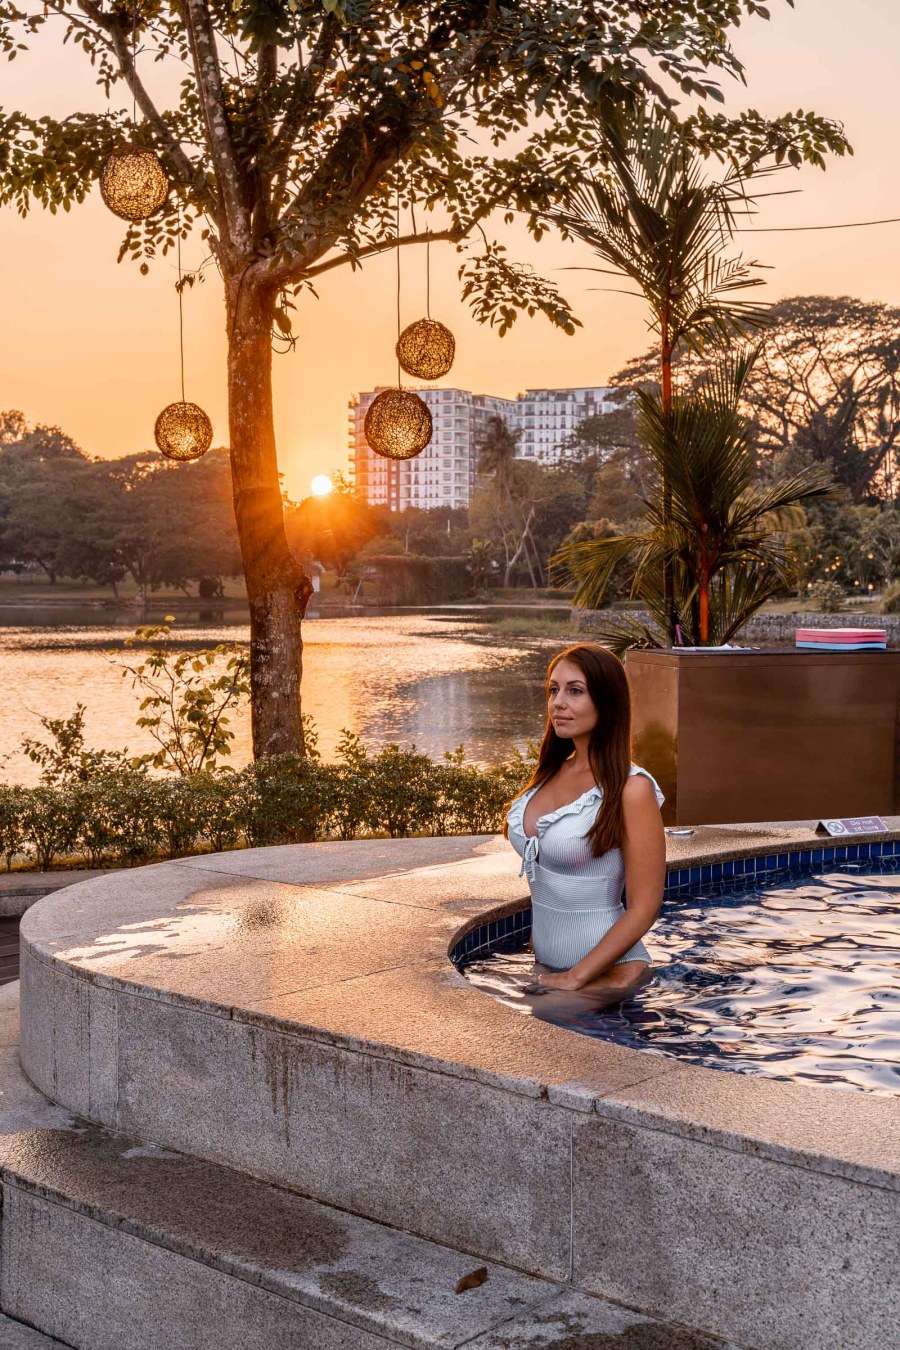 Girl in a blue bathing suit sitting in the hot tub watching the sunset at Lotte Hotel Yangon